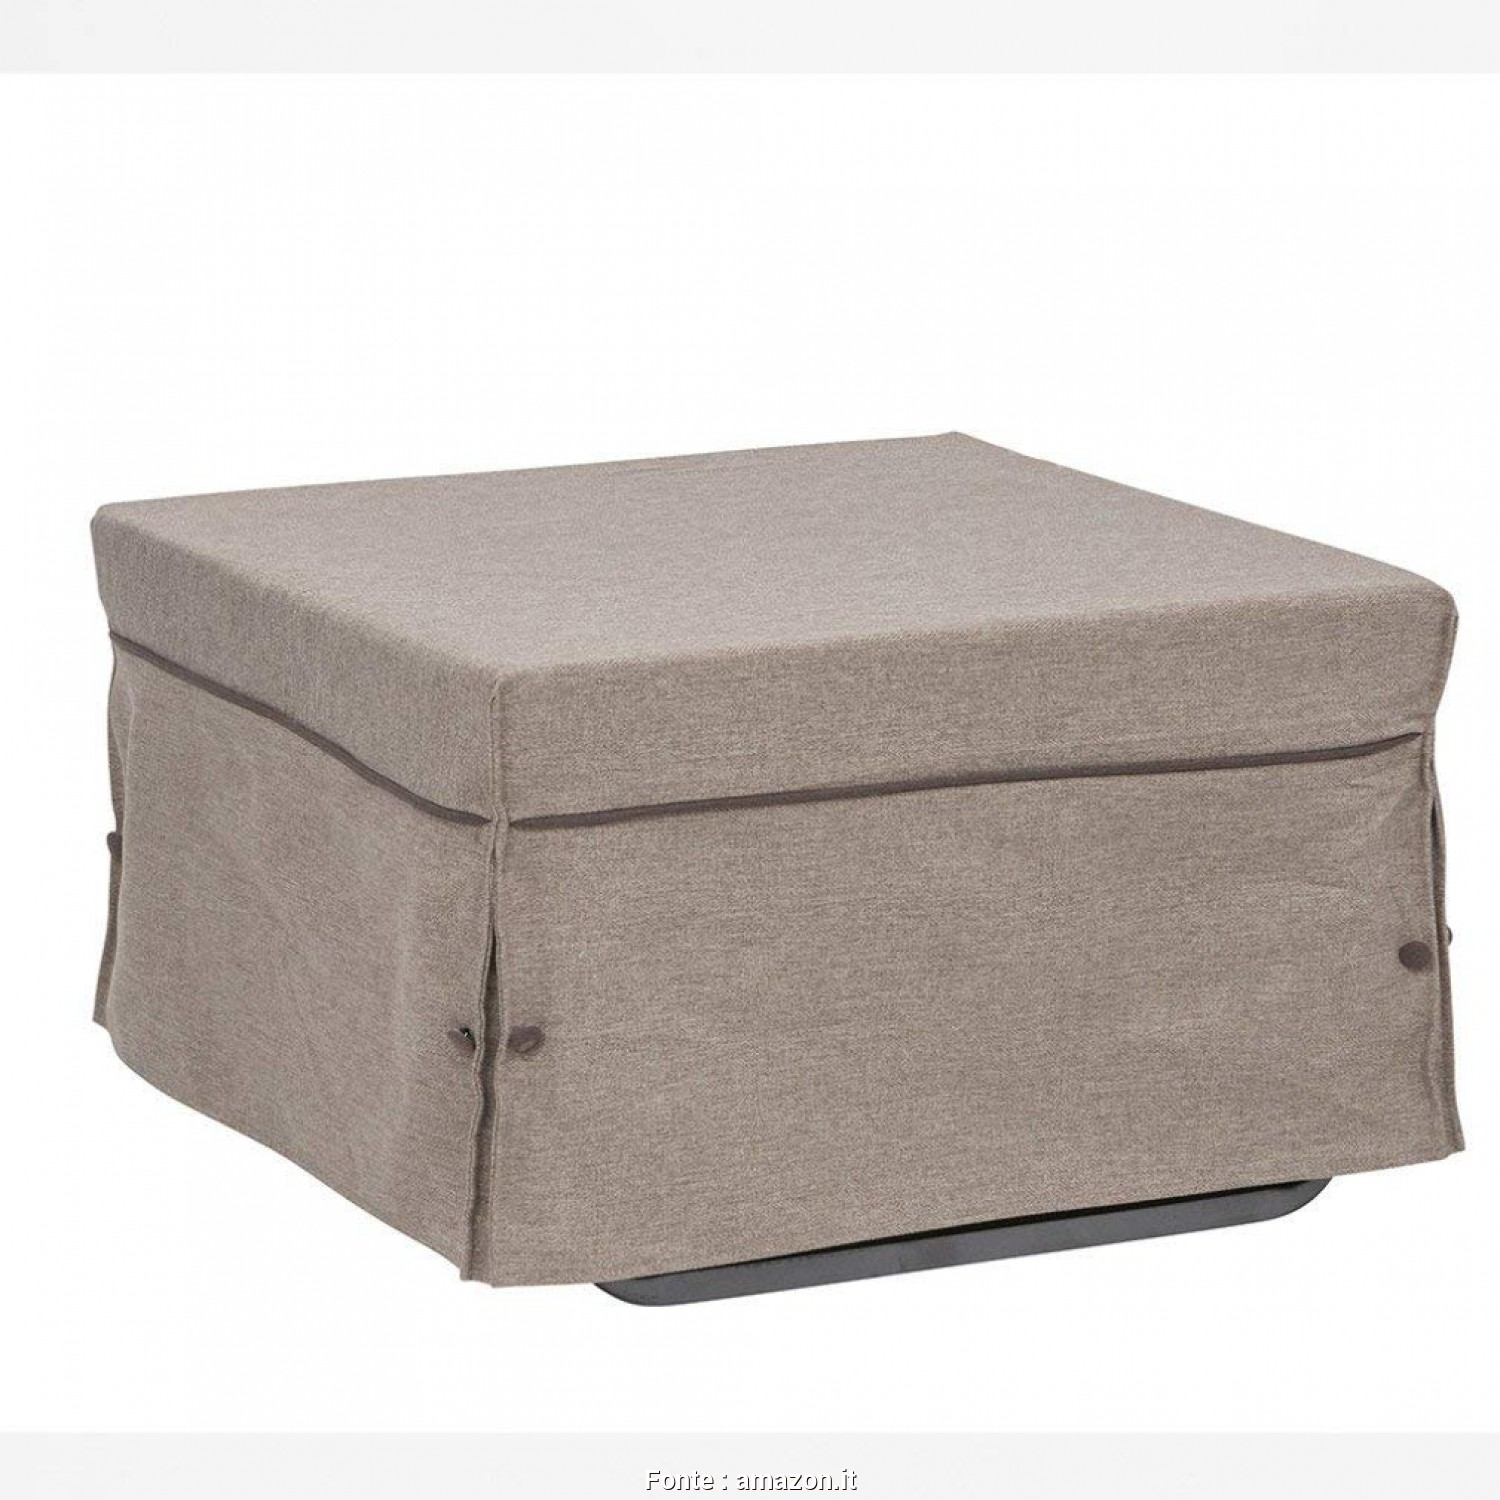 Pouf Per Camera Da Letto.Locale 4 Pouf Camera Da Letto Amazon Keever For Congress